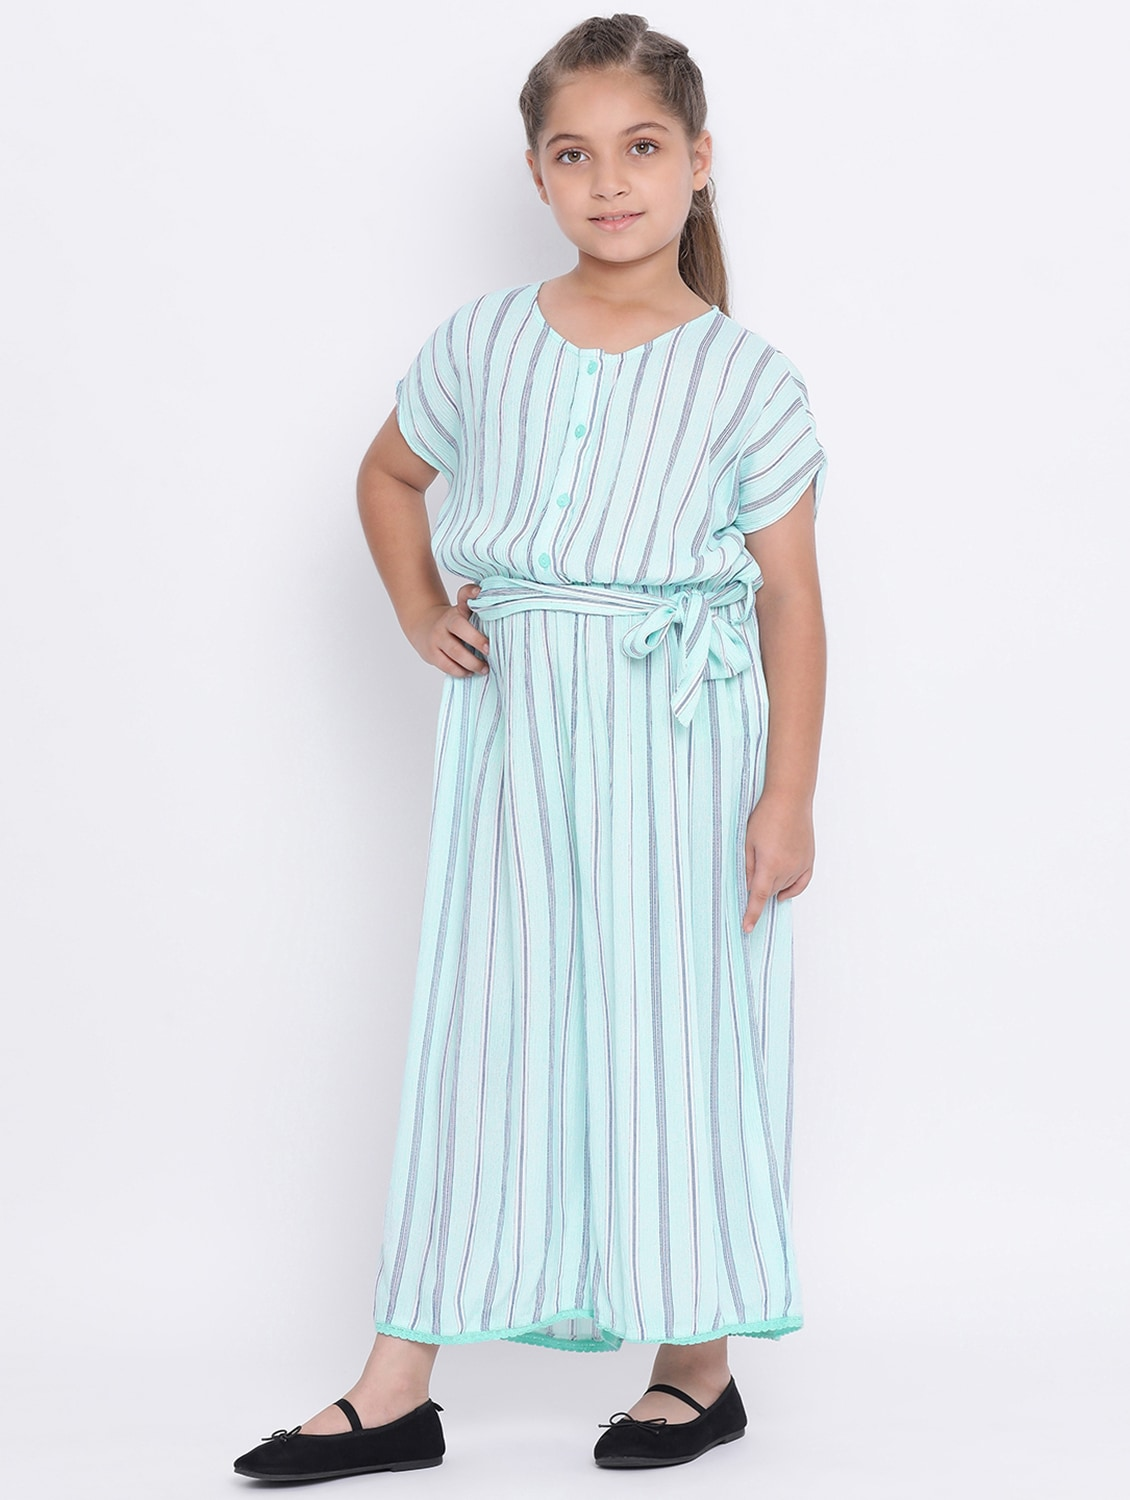 the best high quality guarantee reasonable price light green viscose playsuit